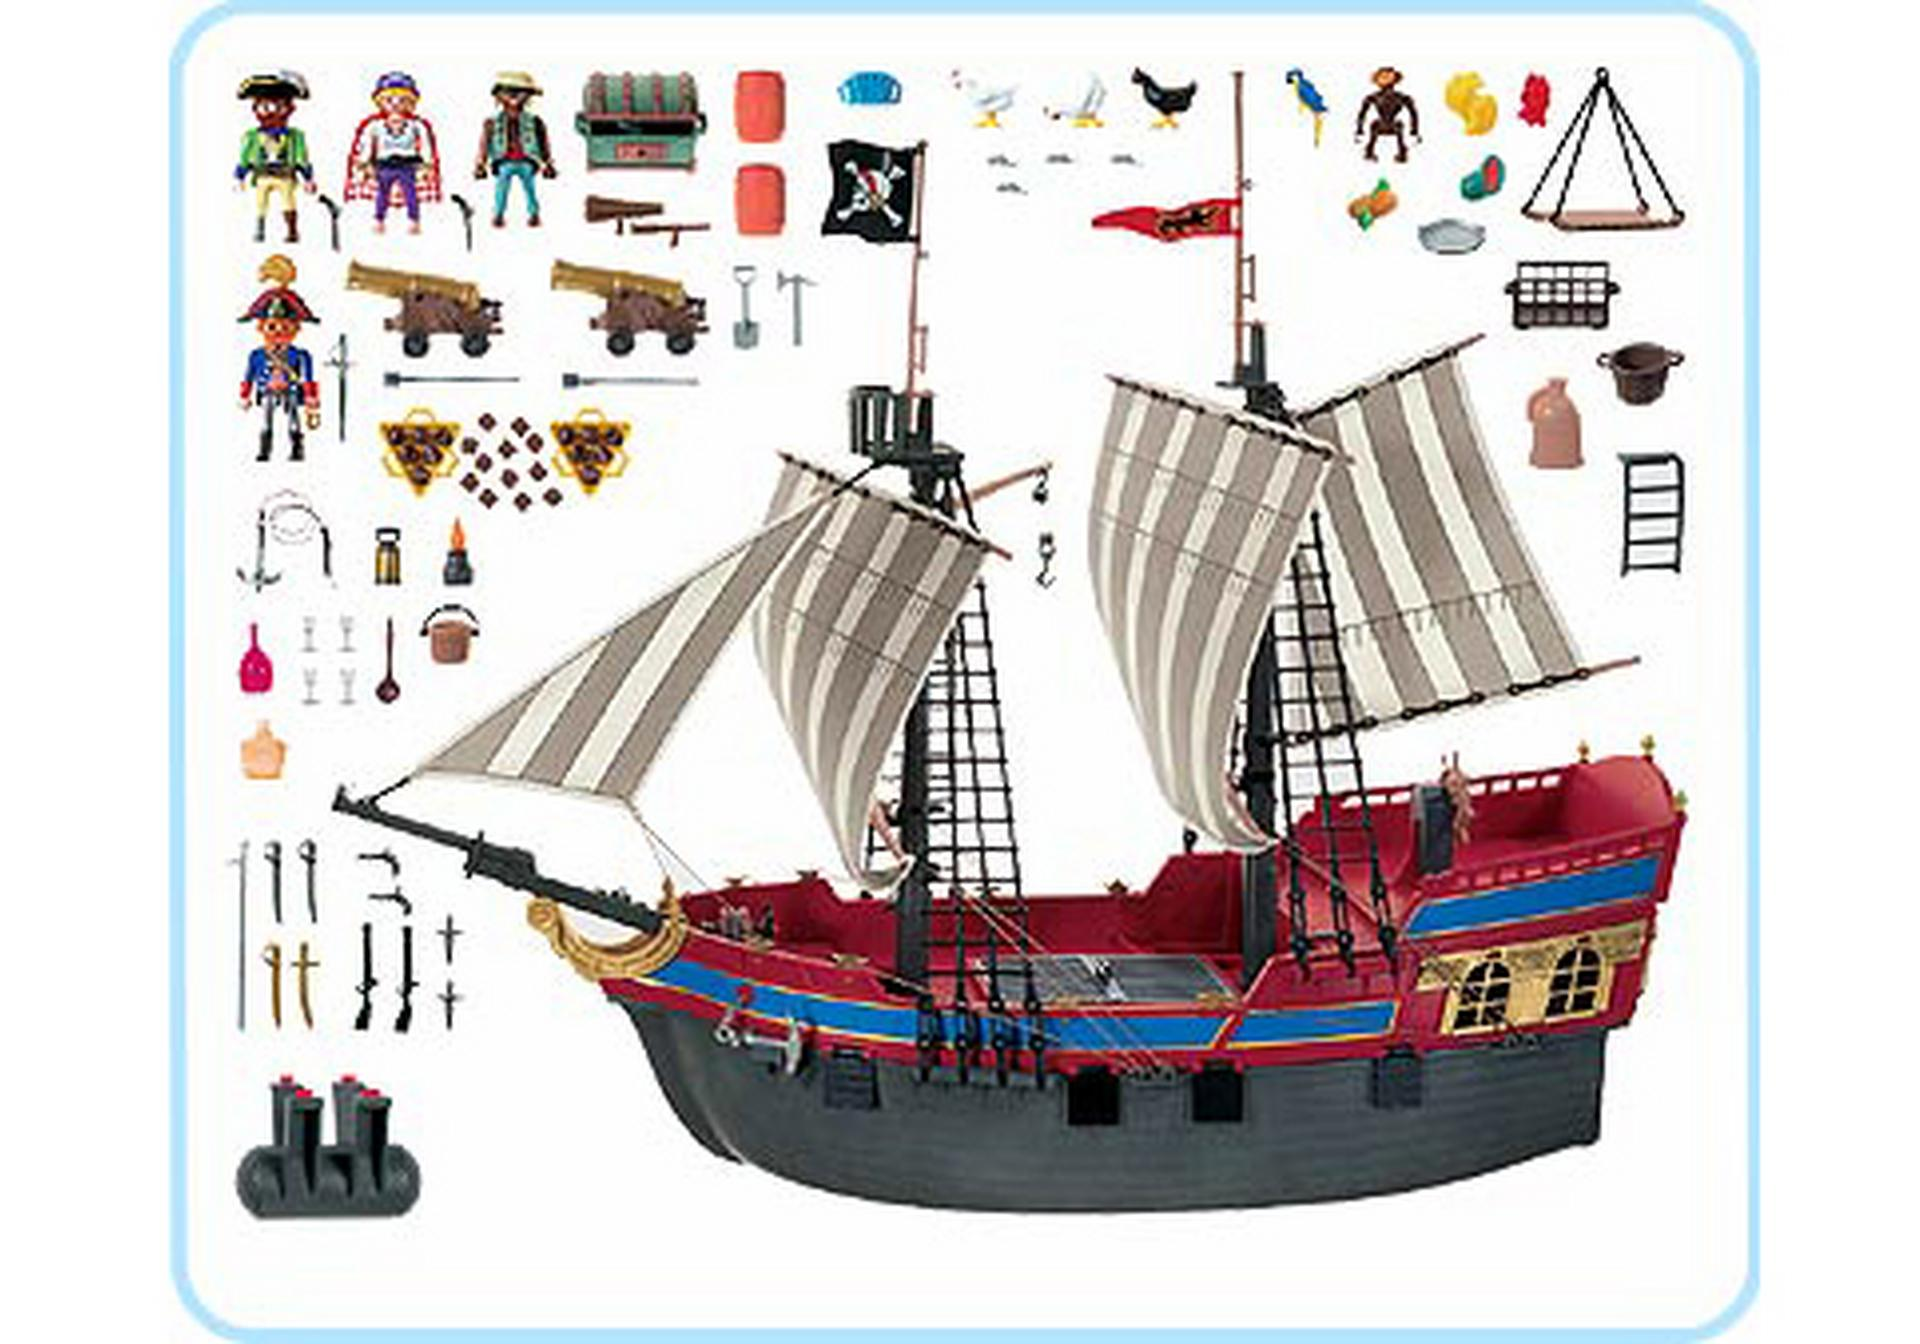 grosses piratenflaggschiff 3940 a playmobil deutschland. Black Bedroom Furniture Sets. Home Design Ideas